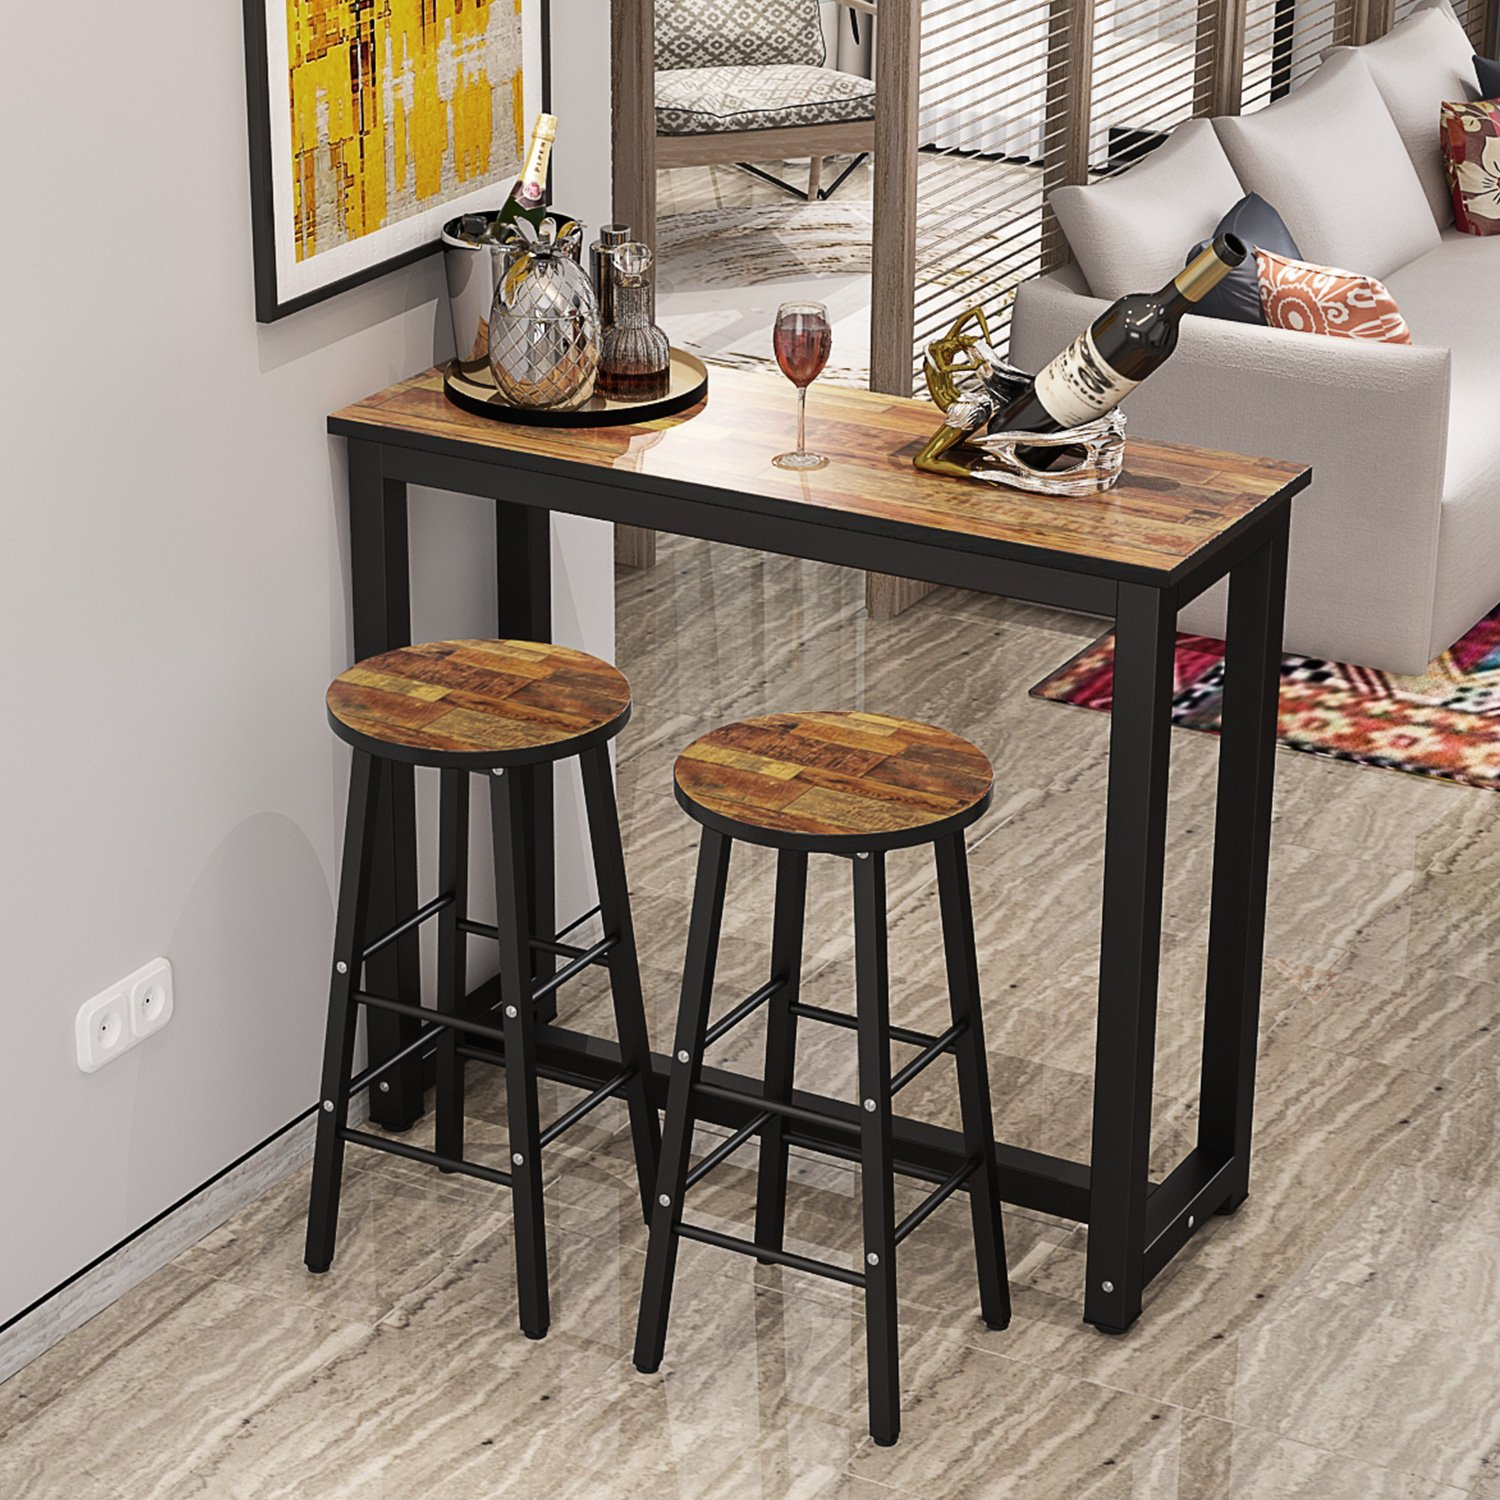 9 Piece Pub Table Set, Counter Height Dining Table Set with 9 Bar ...